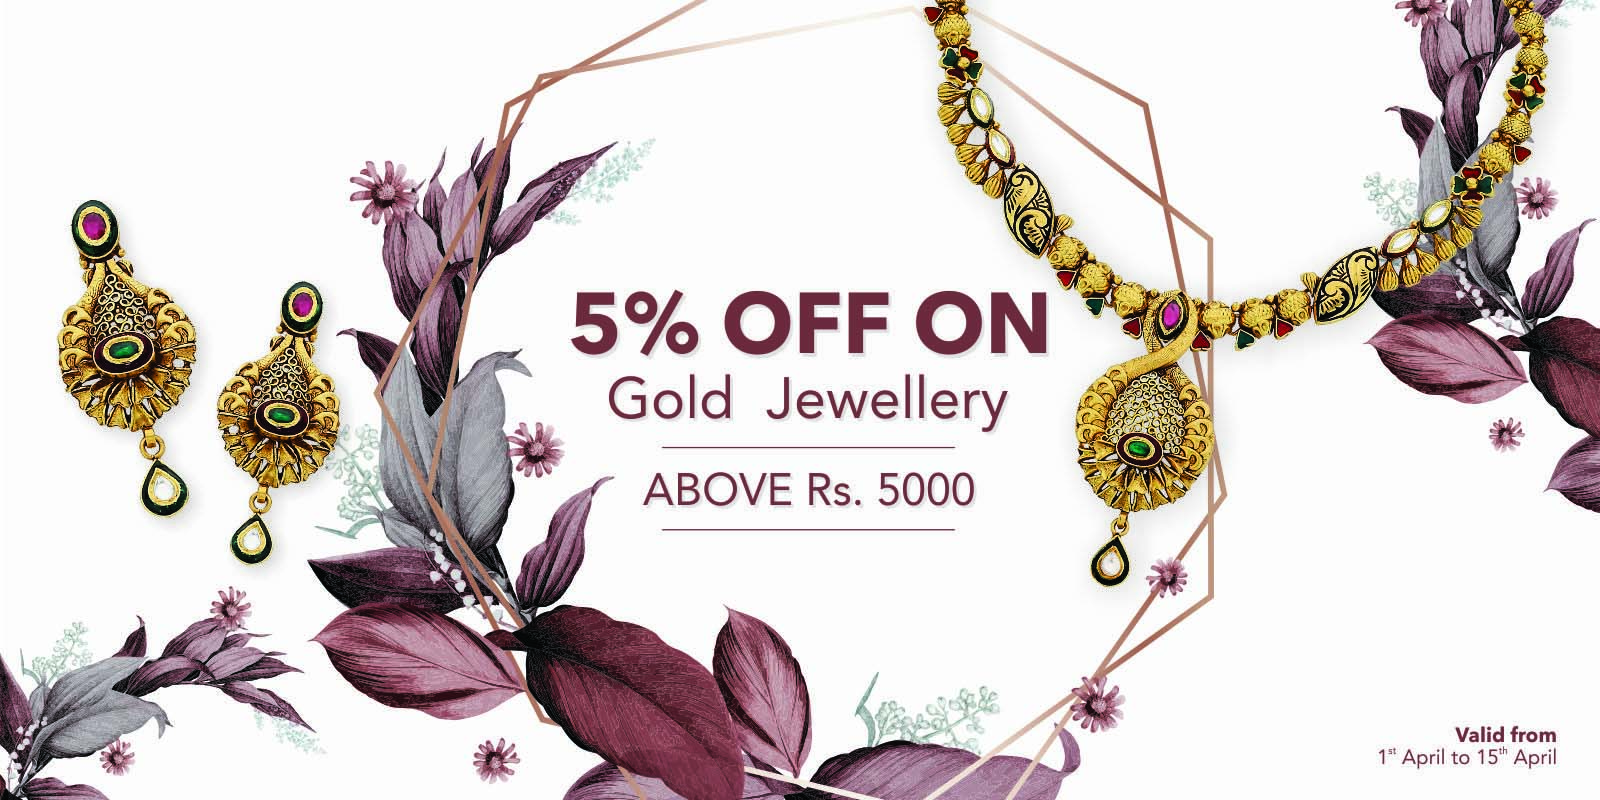 5% off on Gold Jewellery above Rs. 5000